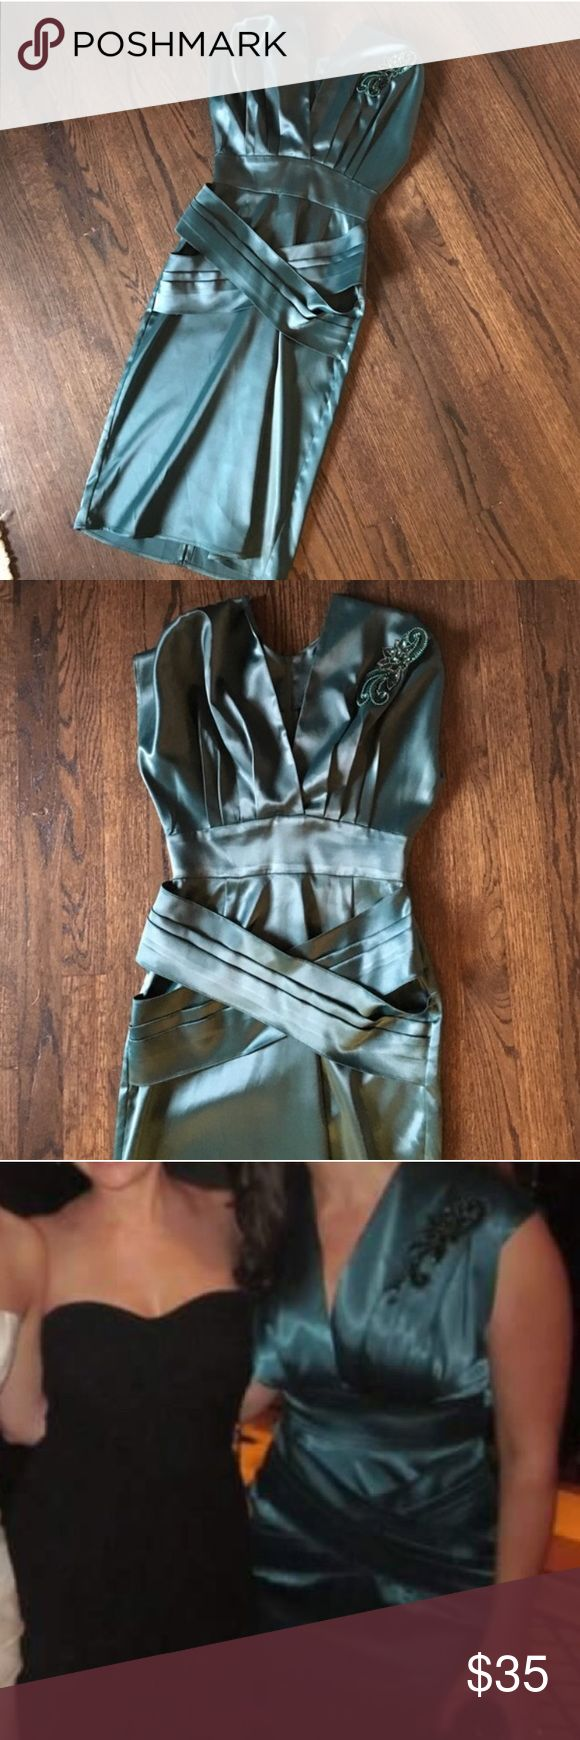 Satin emerald green cocktail dress Size small. Love this gorgeous vintage dress but it's a little snug for me. I'm a size 4 and think this would best fit a size 2. Dresses